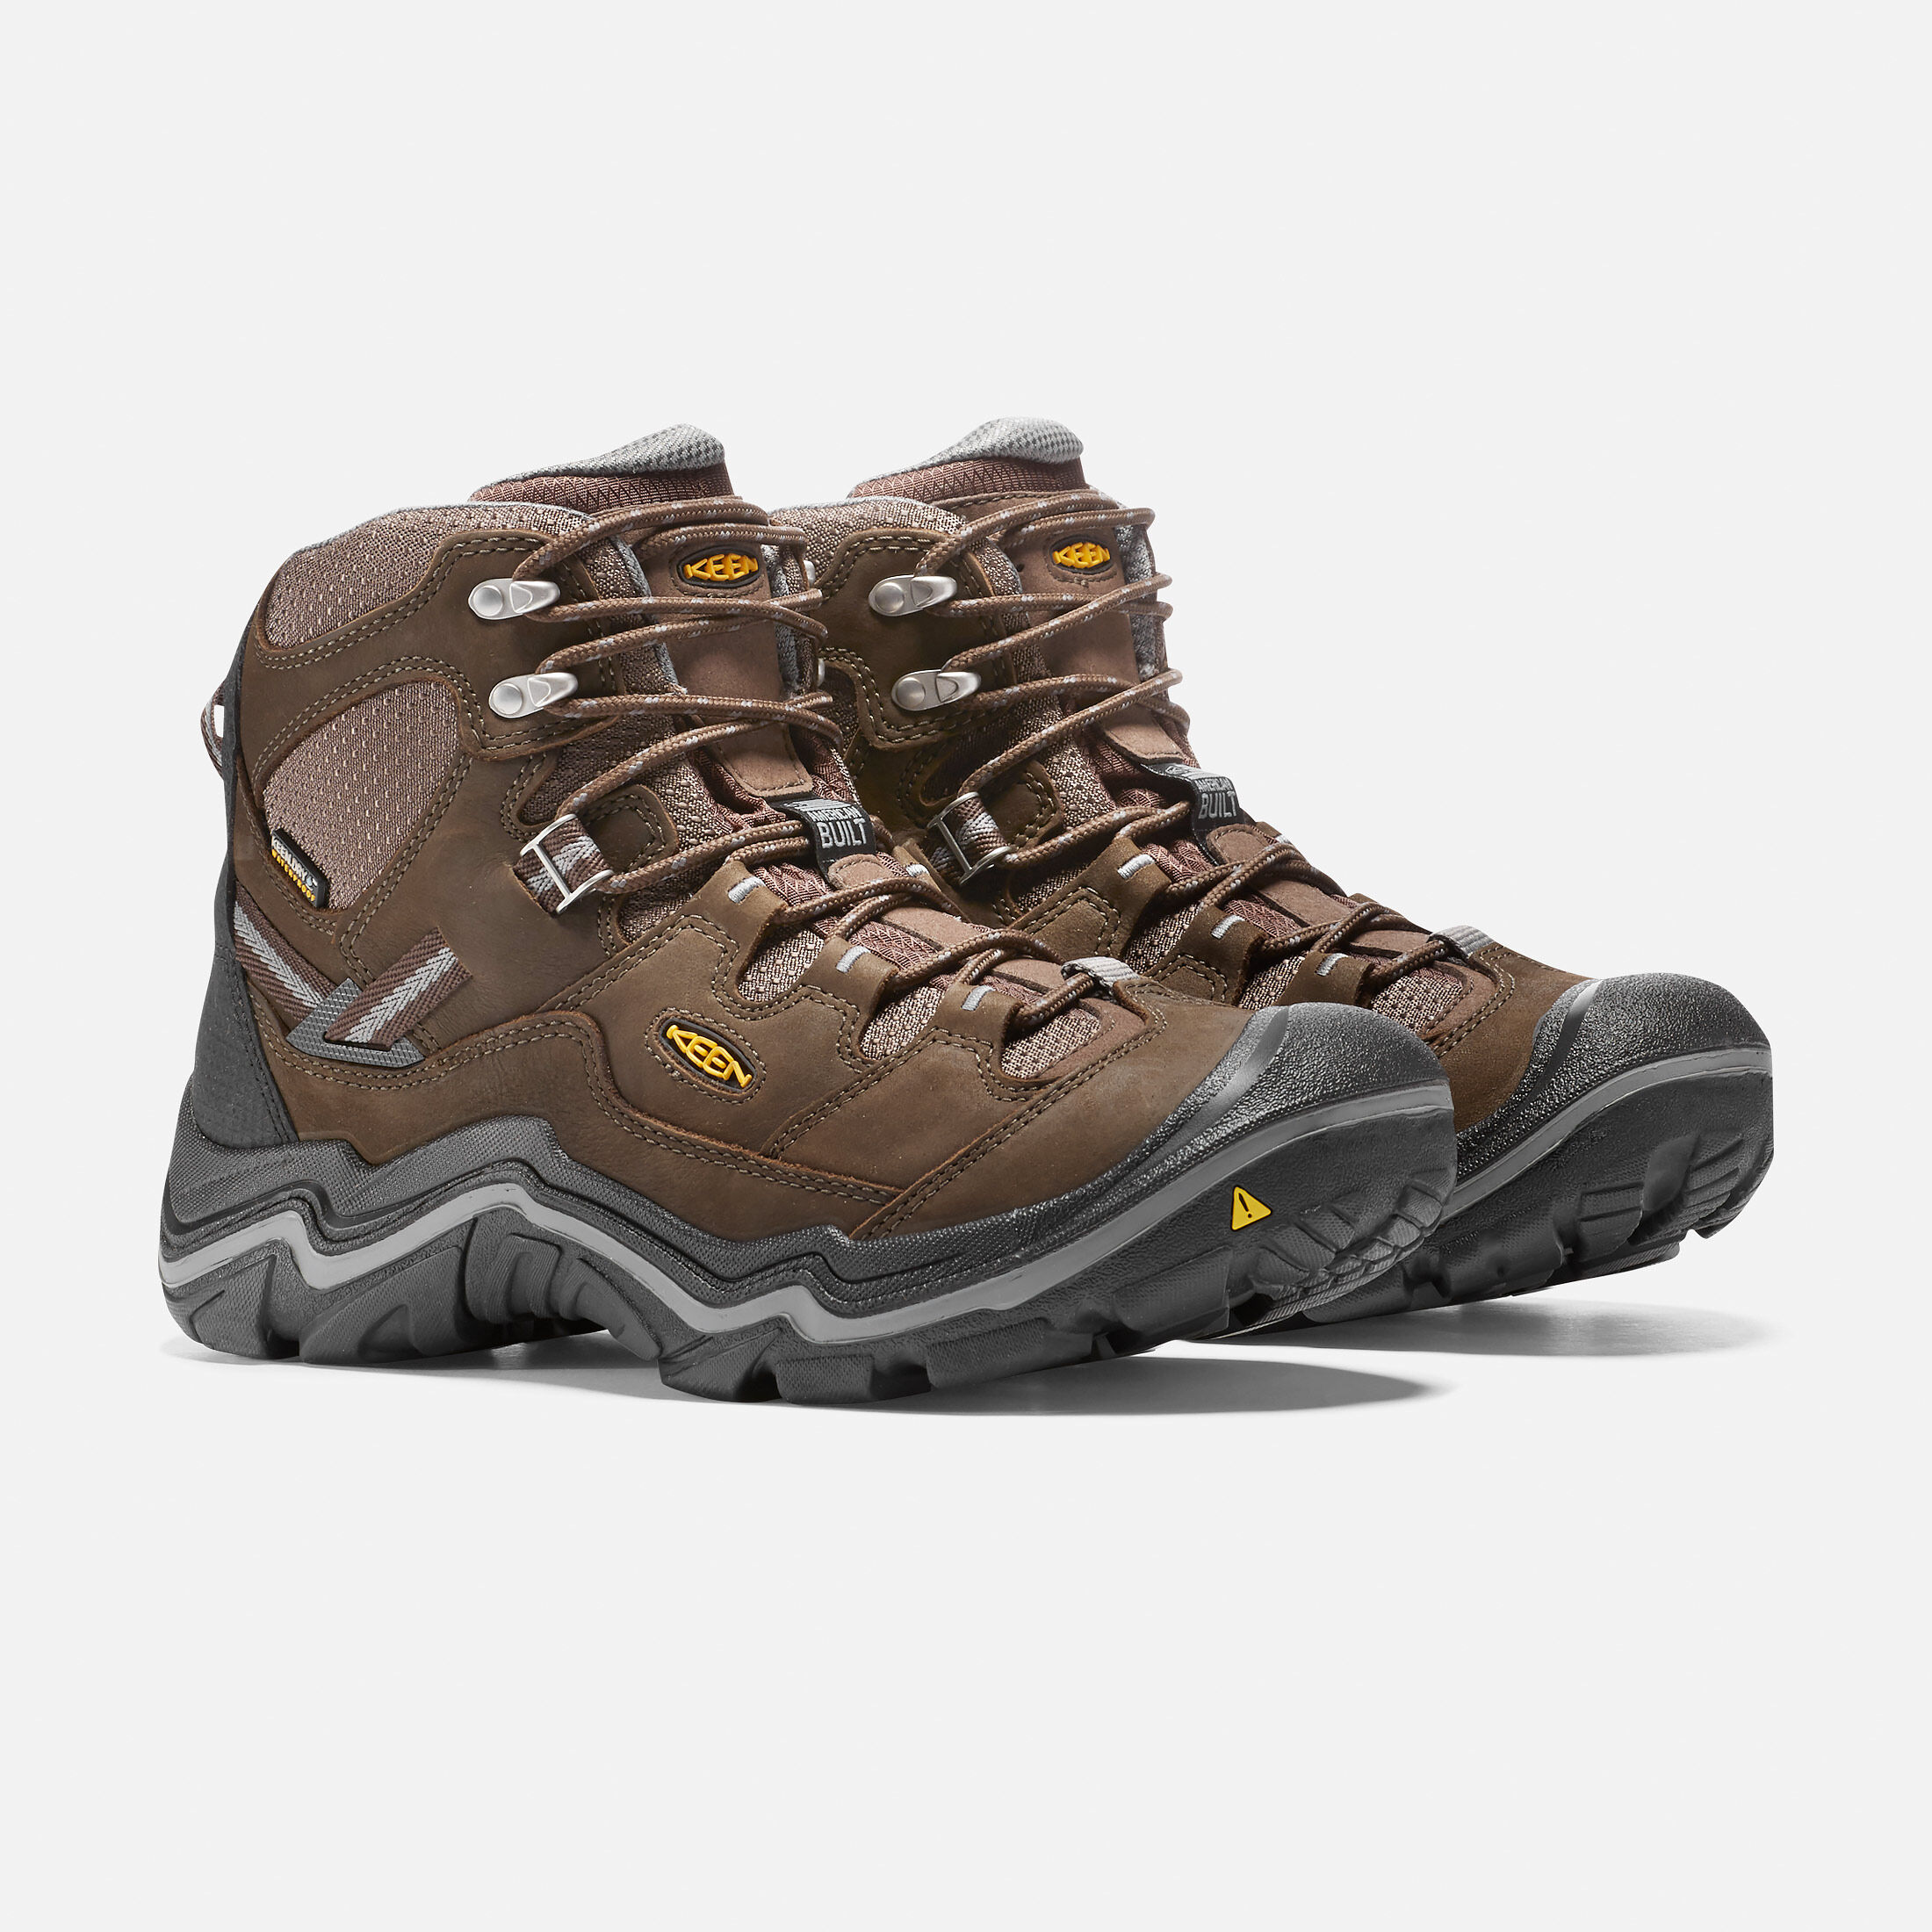 Keen Men Shoes Brown Leather Steel Toe Hiking Trail Waterproof Sandals Size 11.5 Sandals Men's Shoes